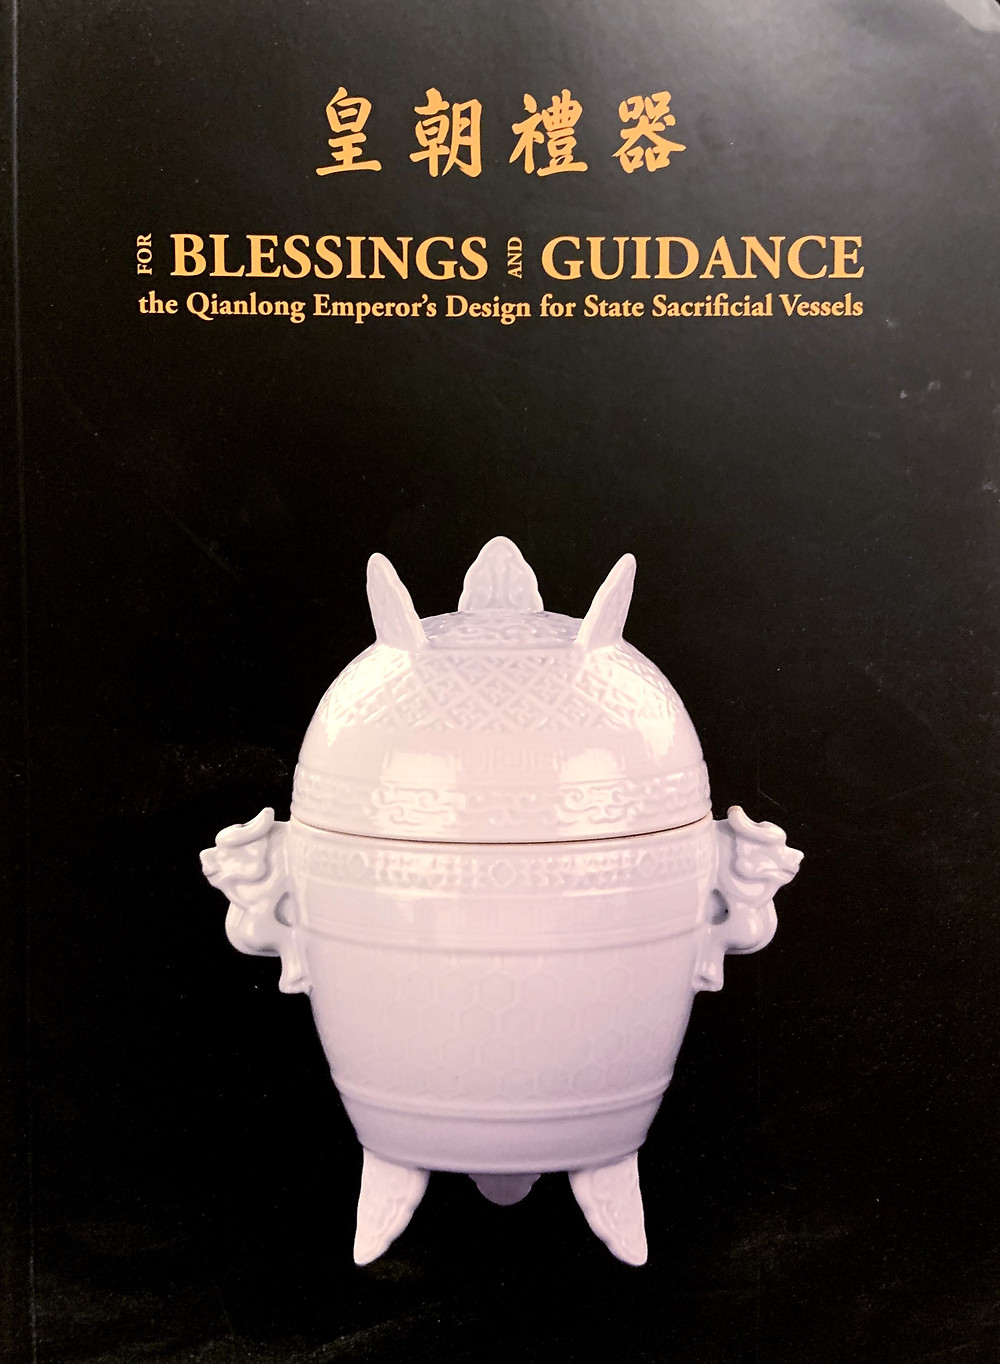 For Blessings and Guidance: the Qianlong Emperor's Design for State Sacrificial Vessels